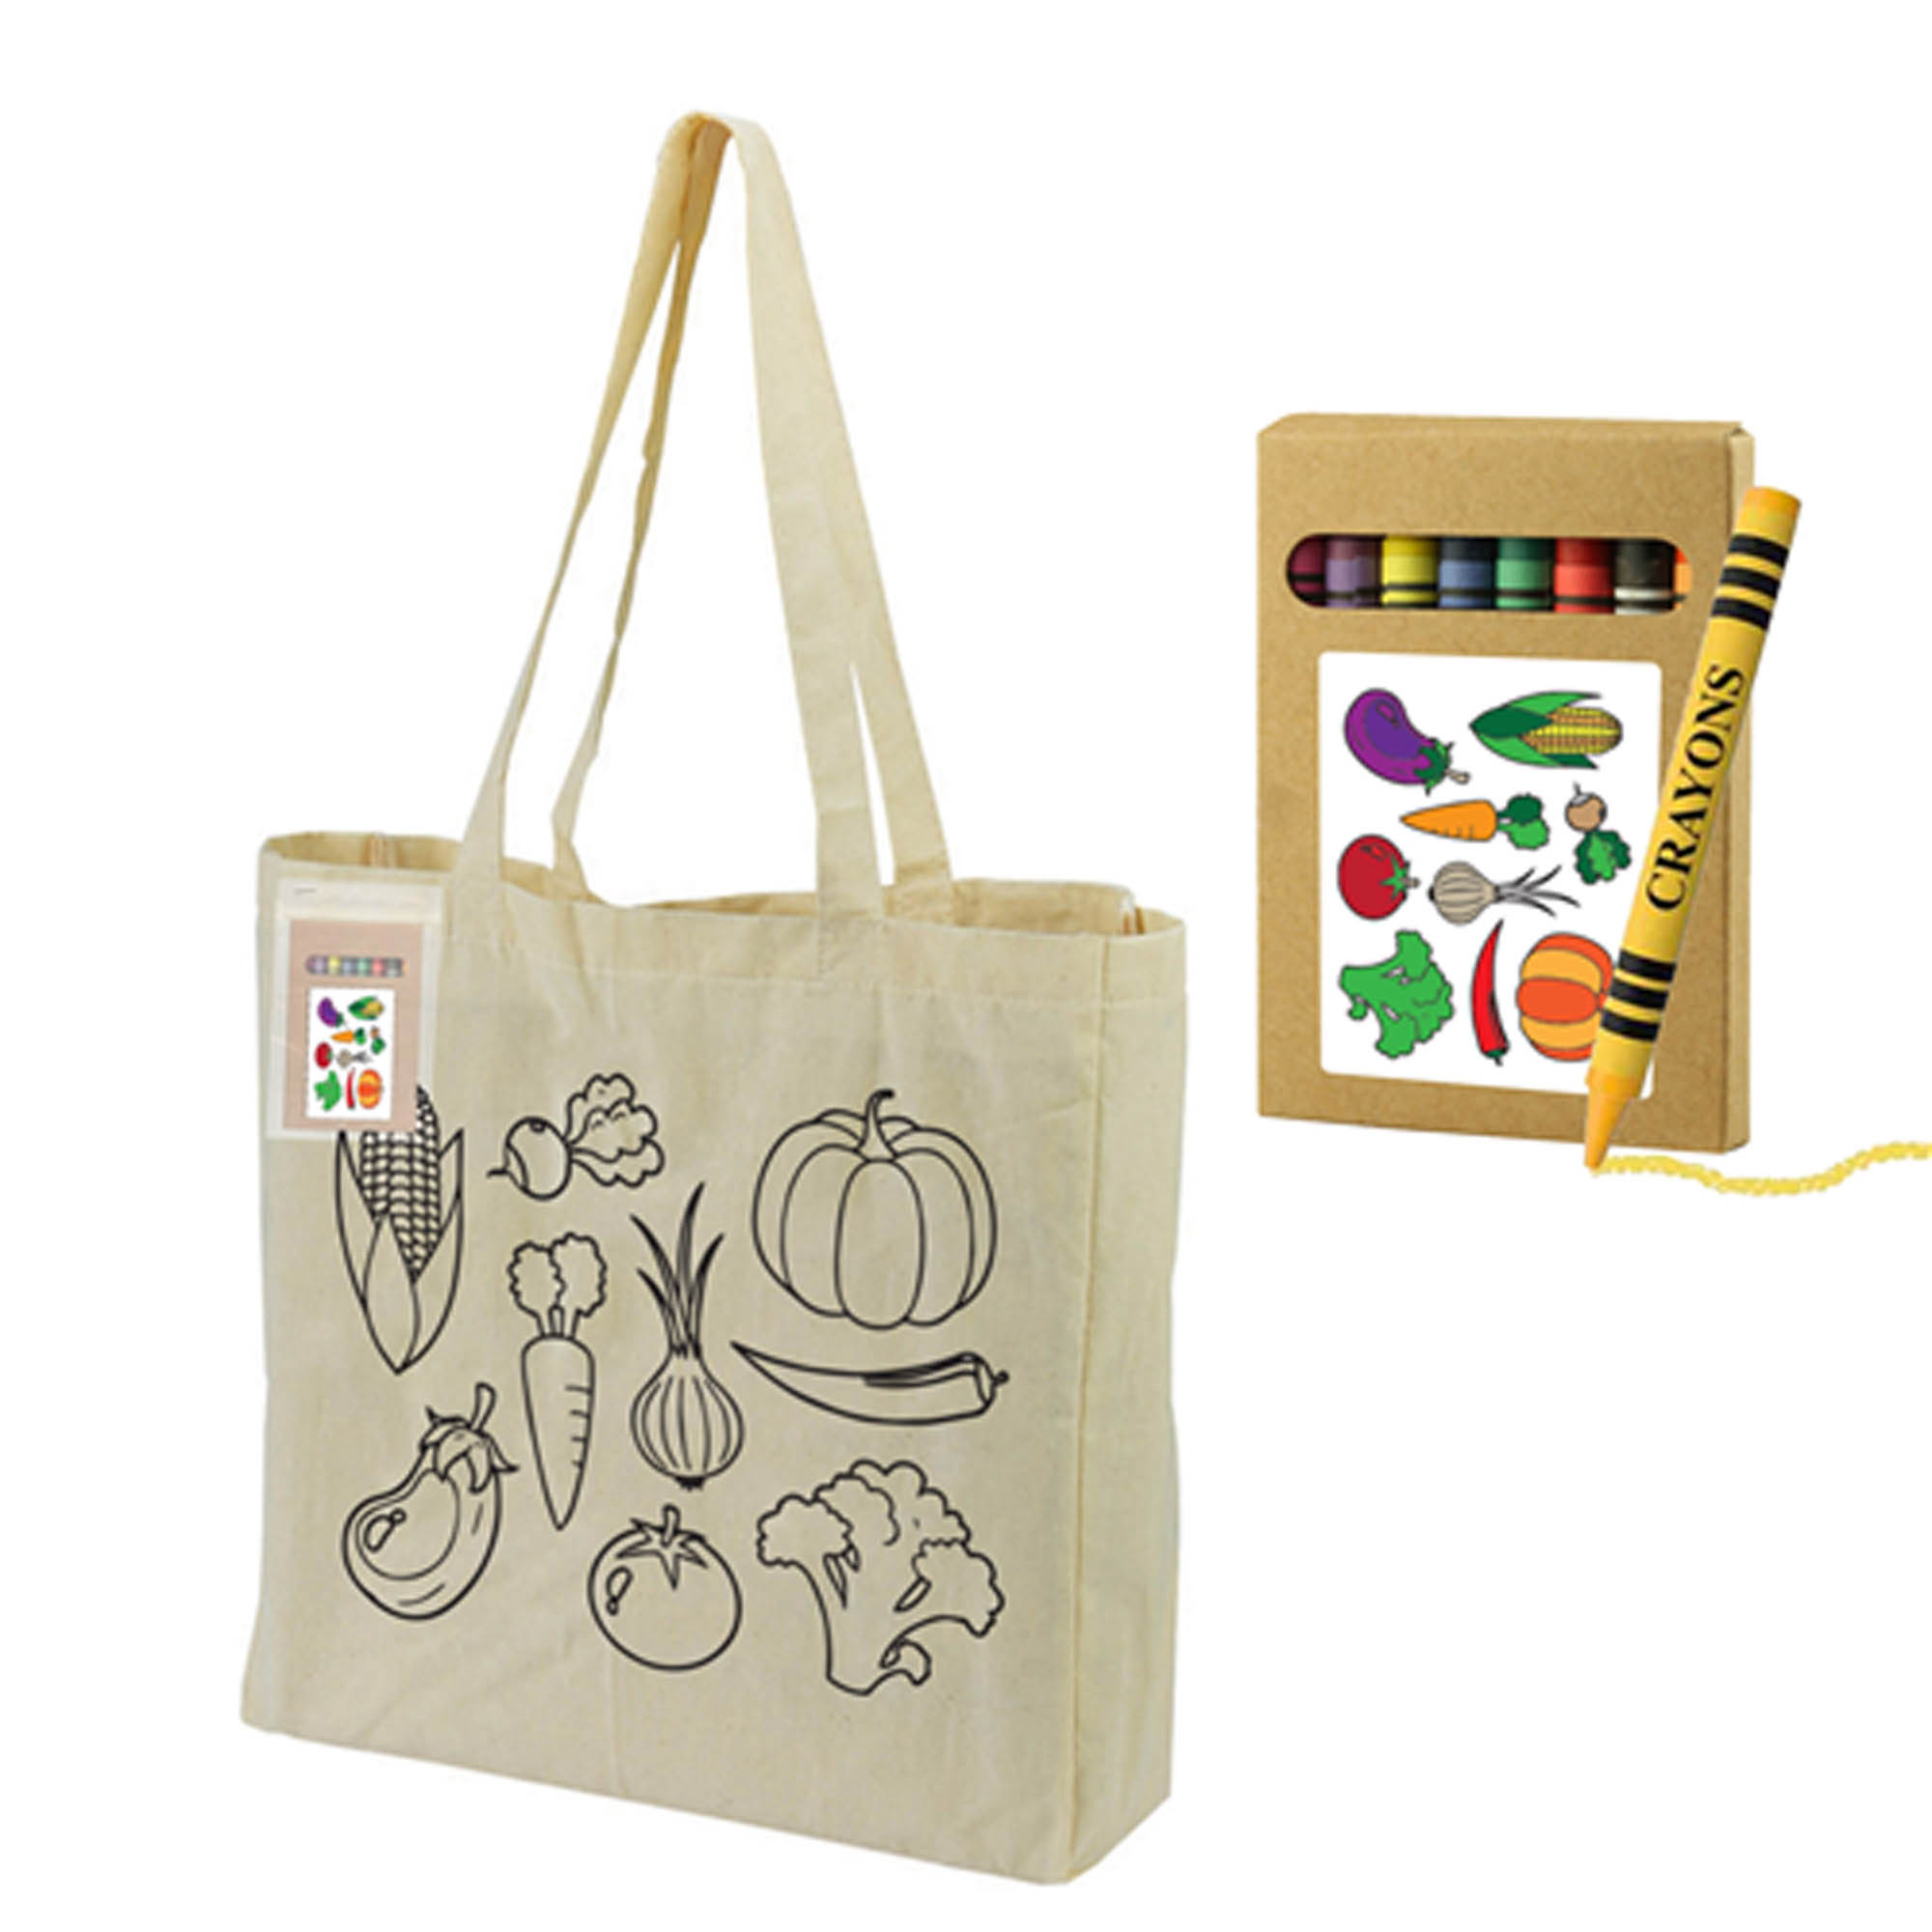 Colouring Calico Bag with Gusset Bag